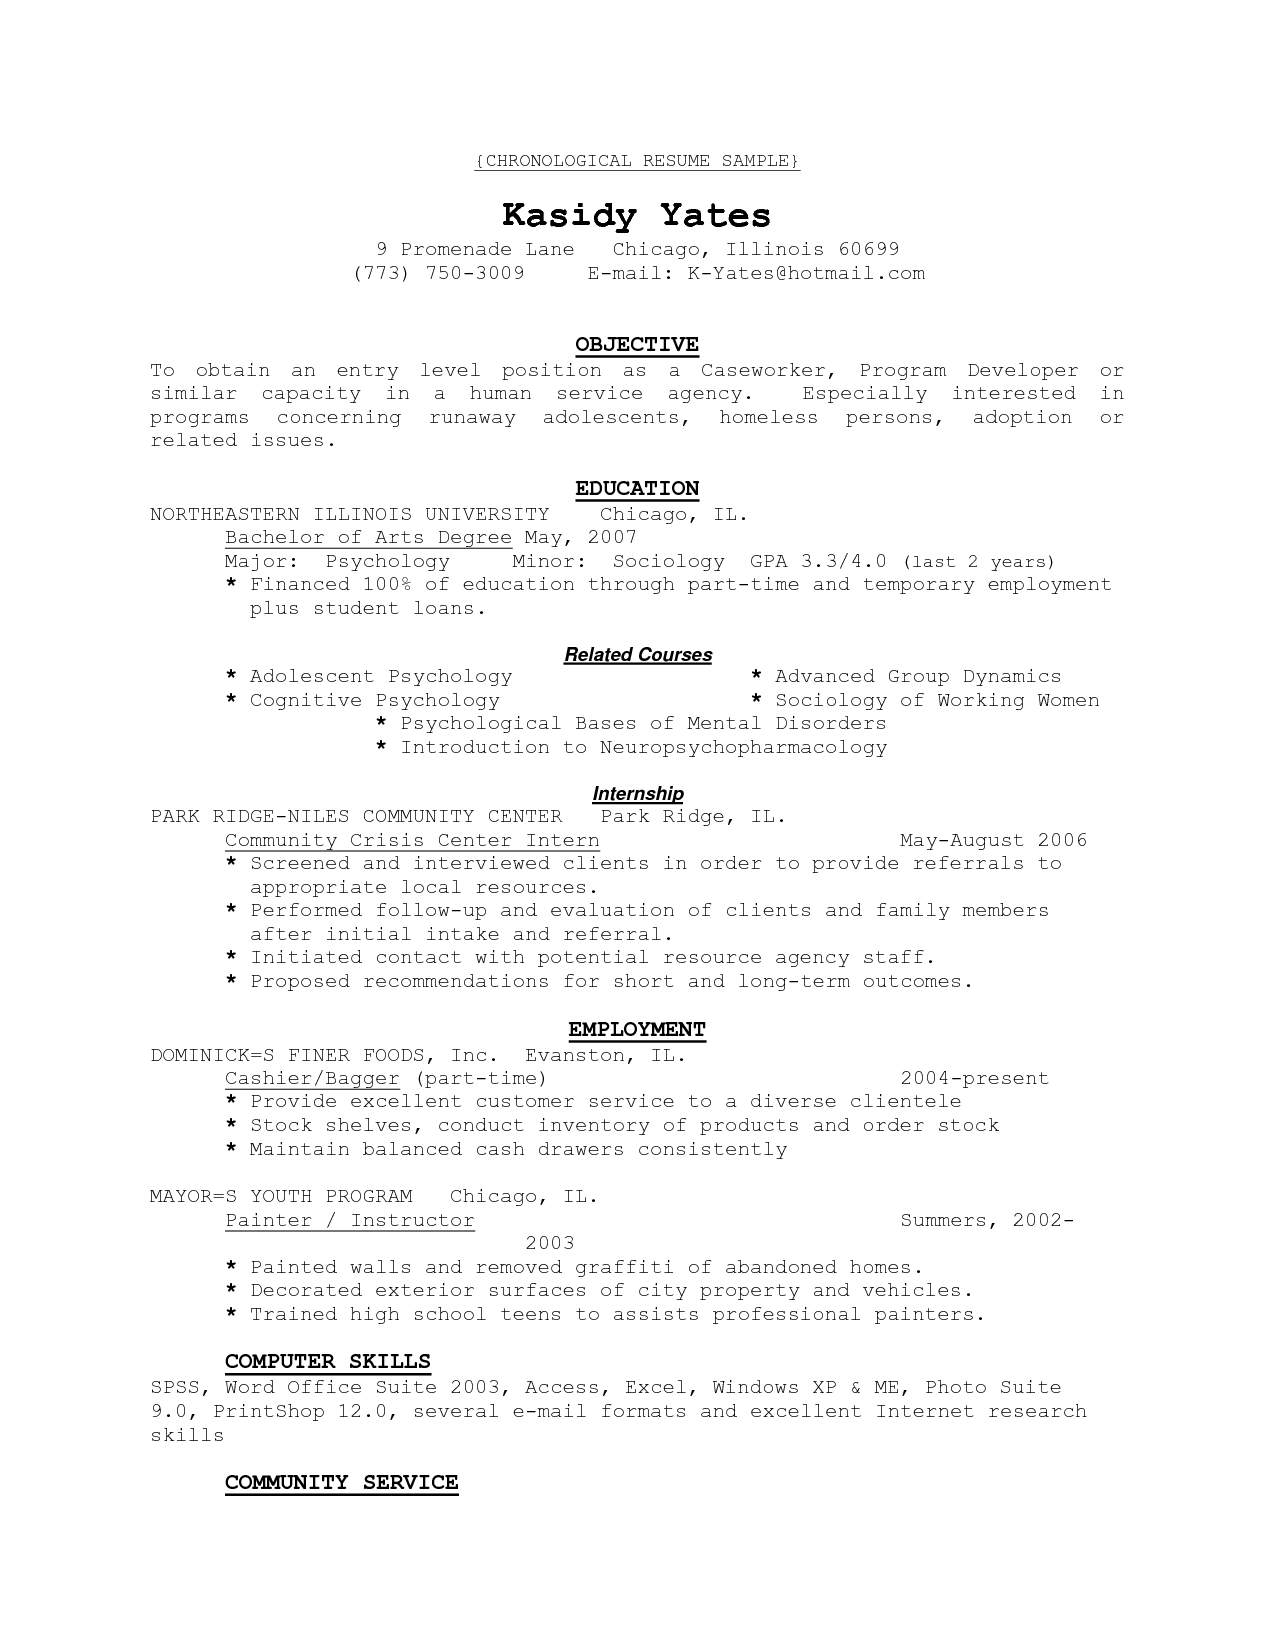 Resume Sample Format Download Pdf Chronological Templates Which